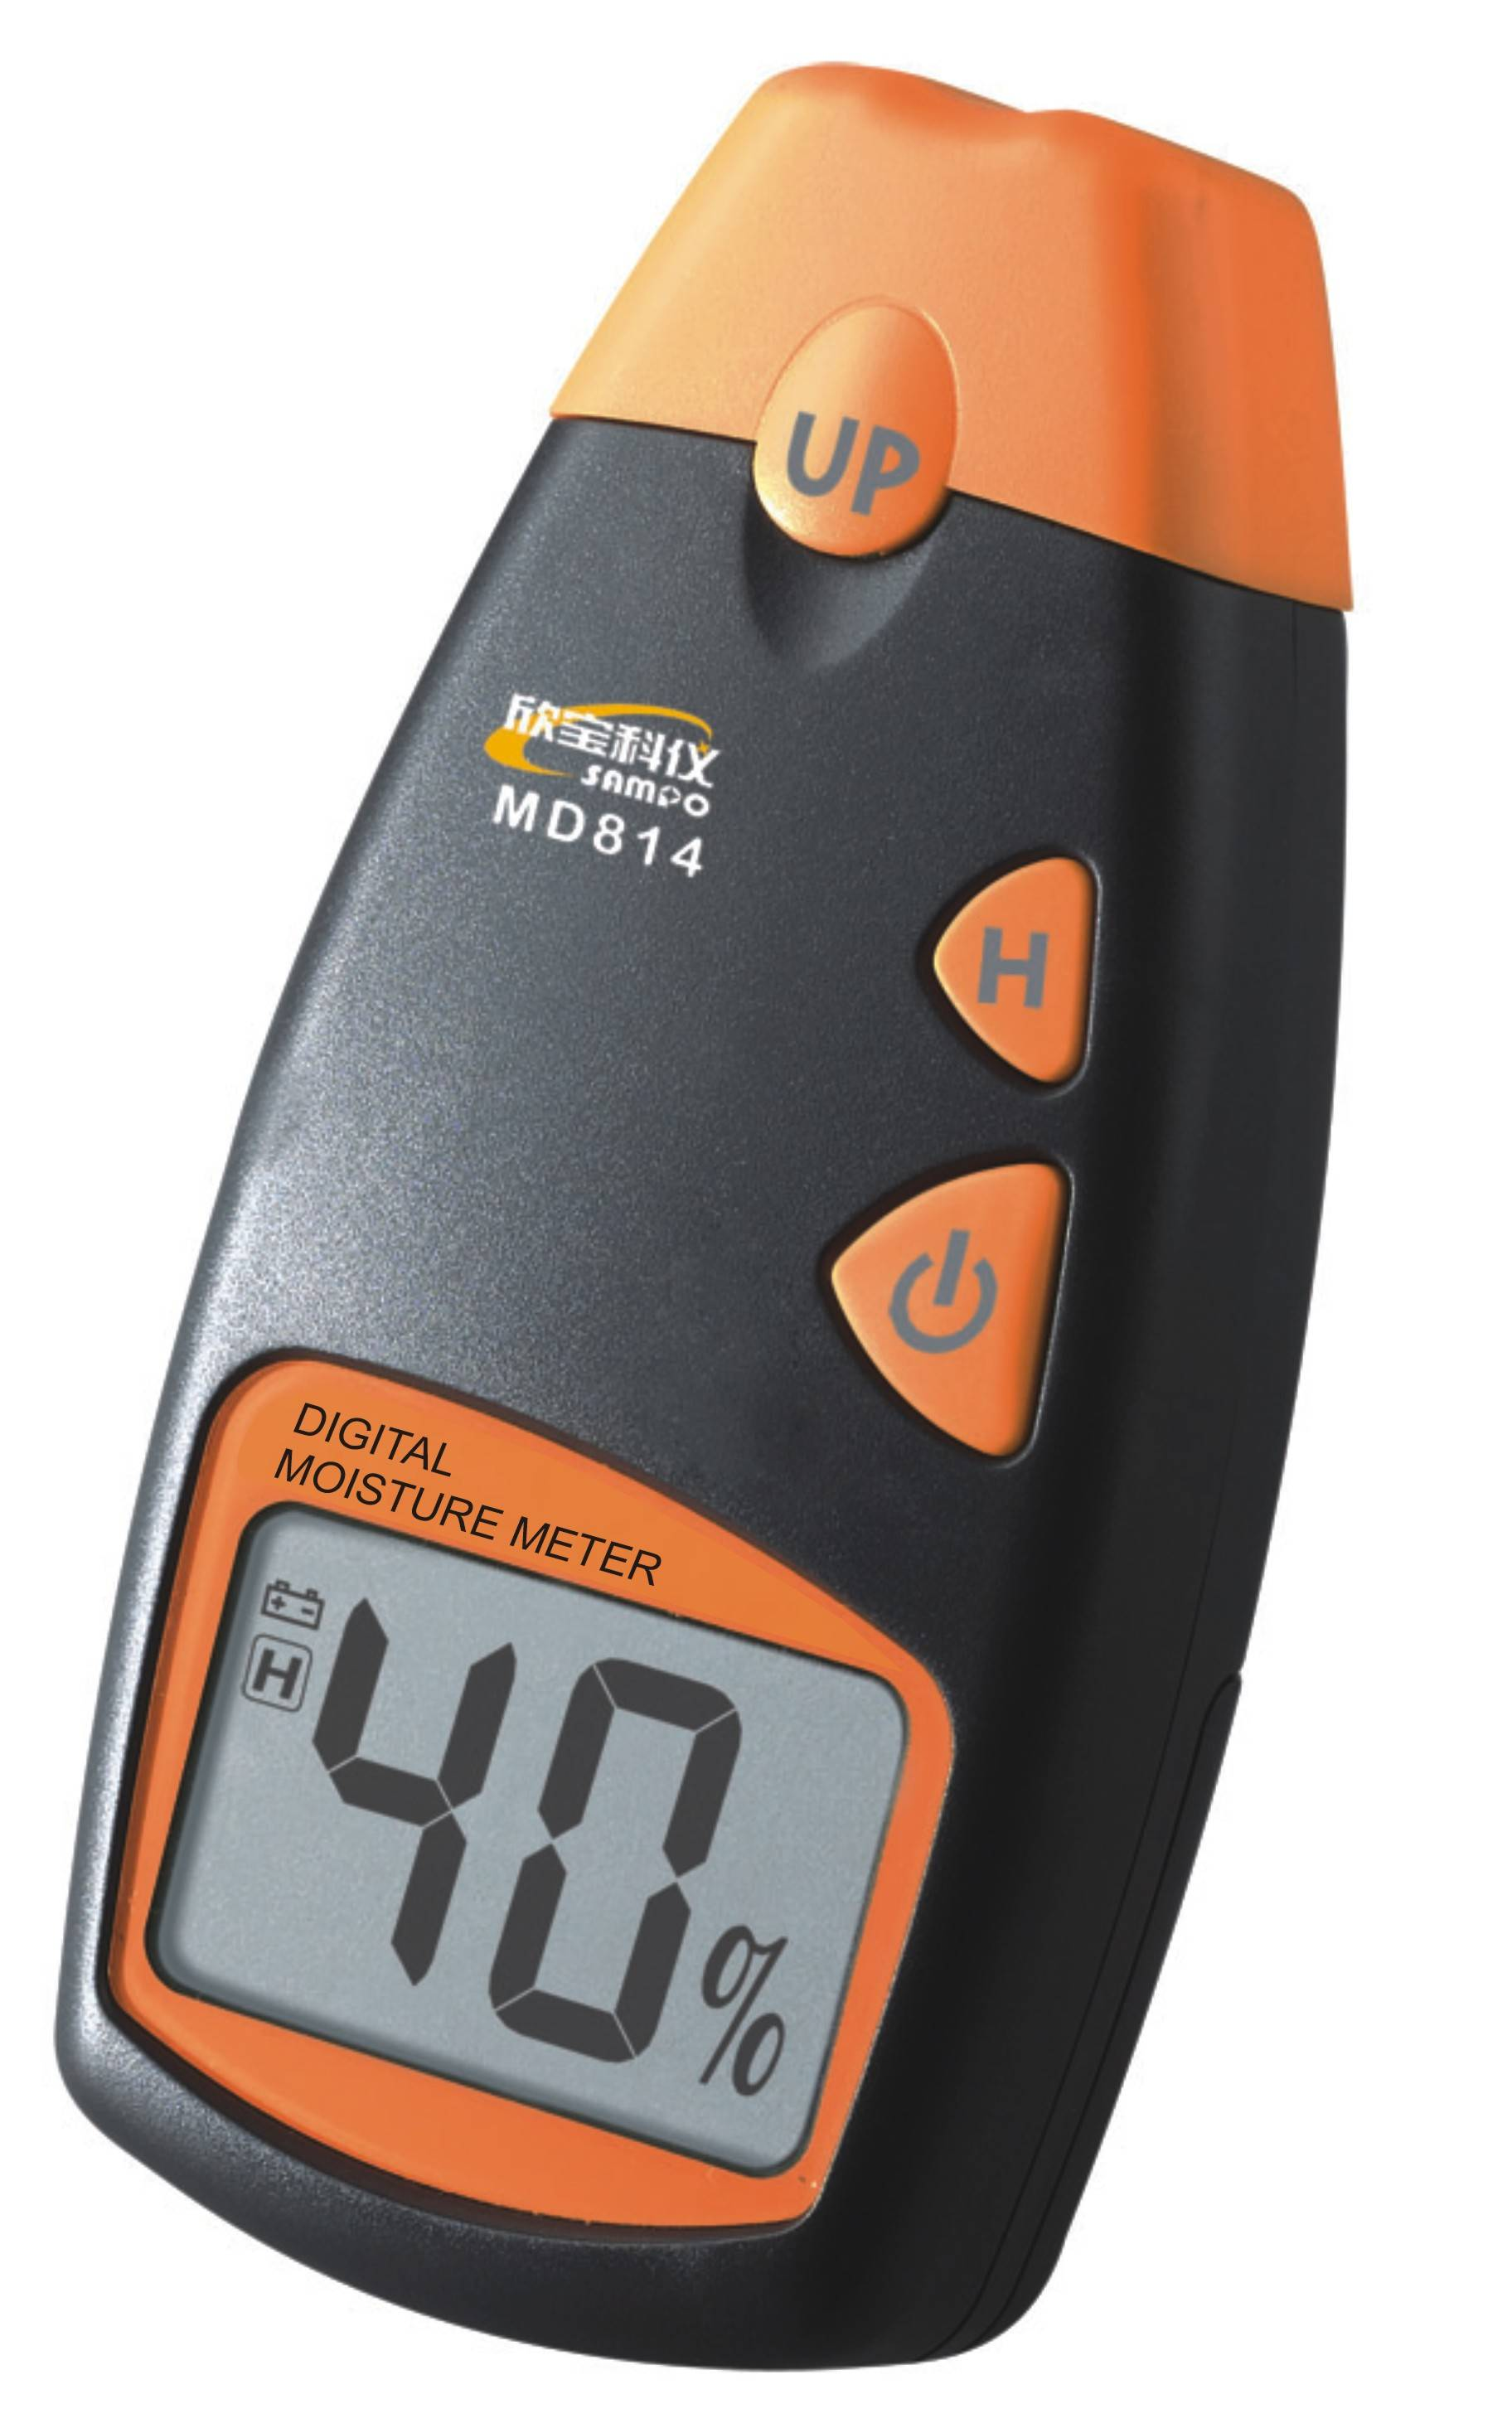 Digital wood moisture meter Factory accuracy 1%